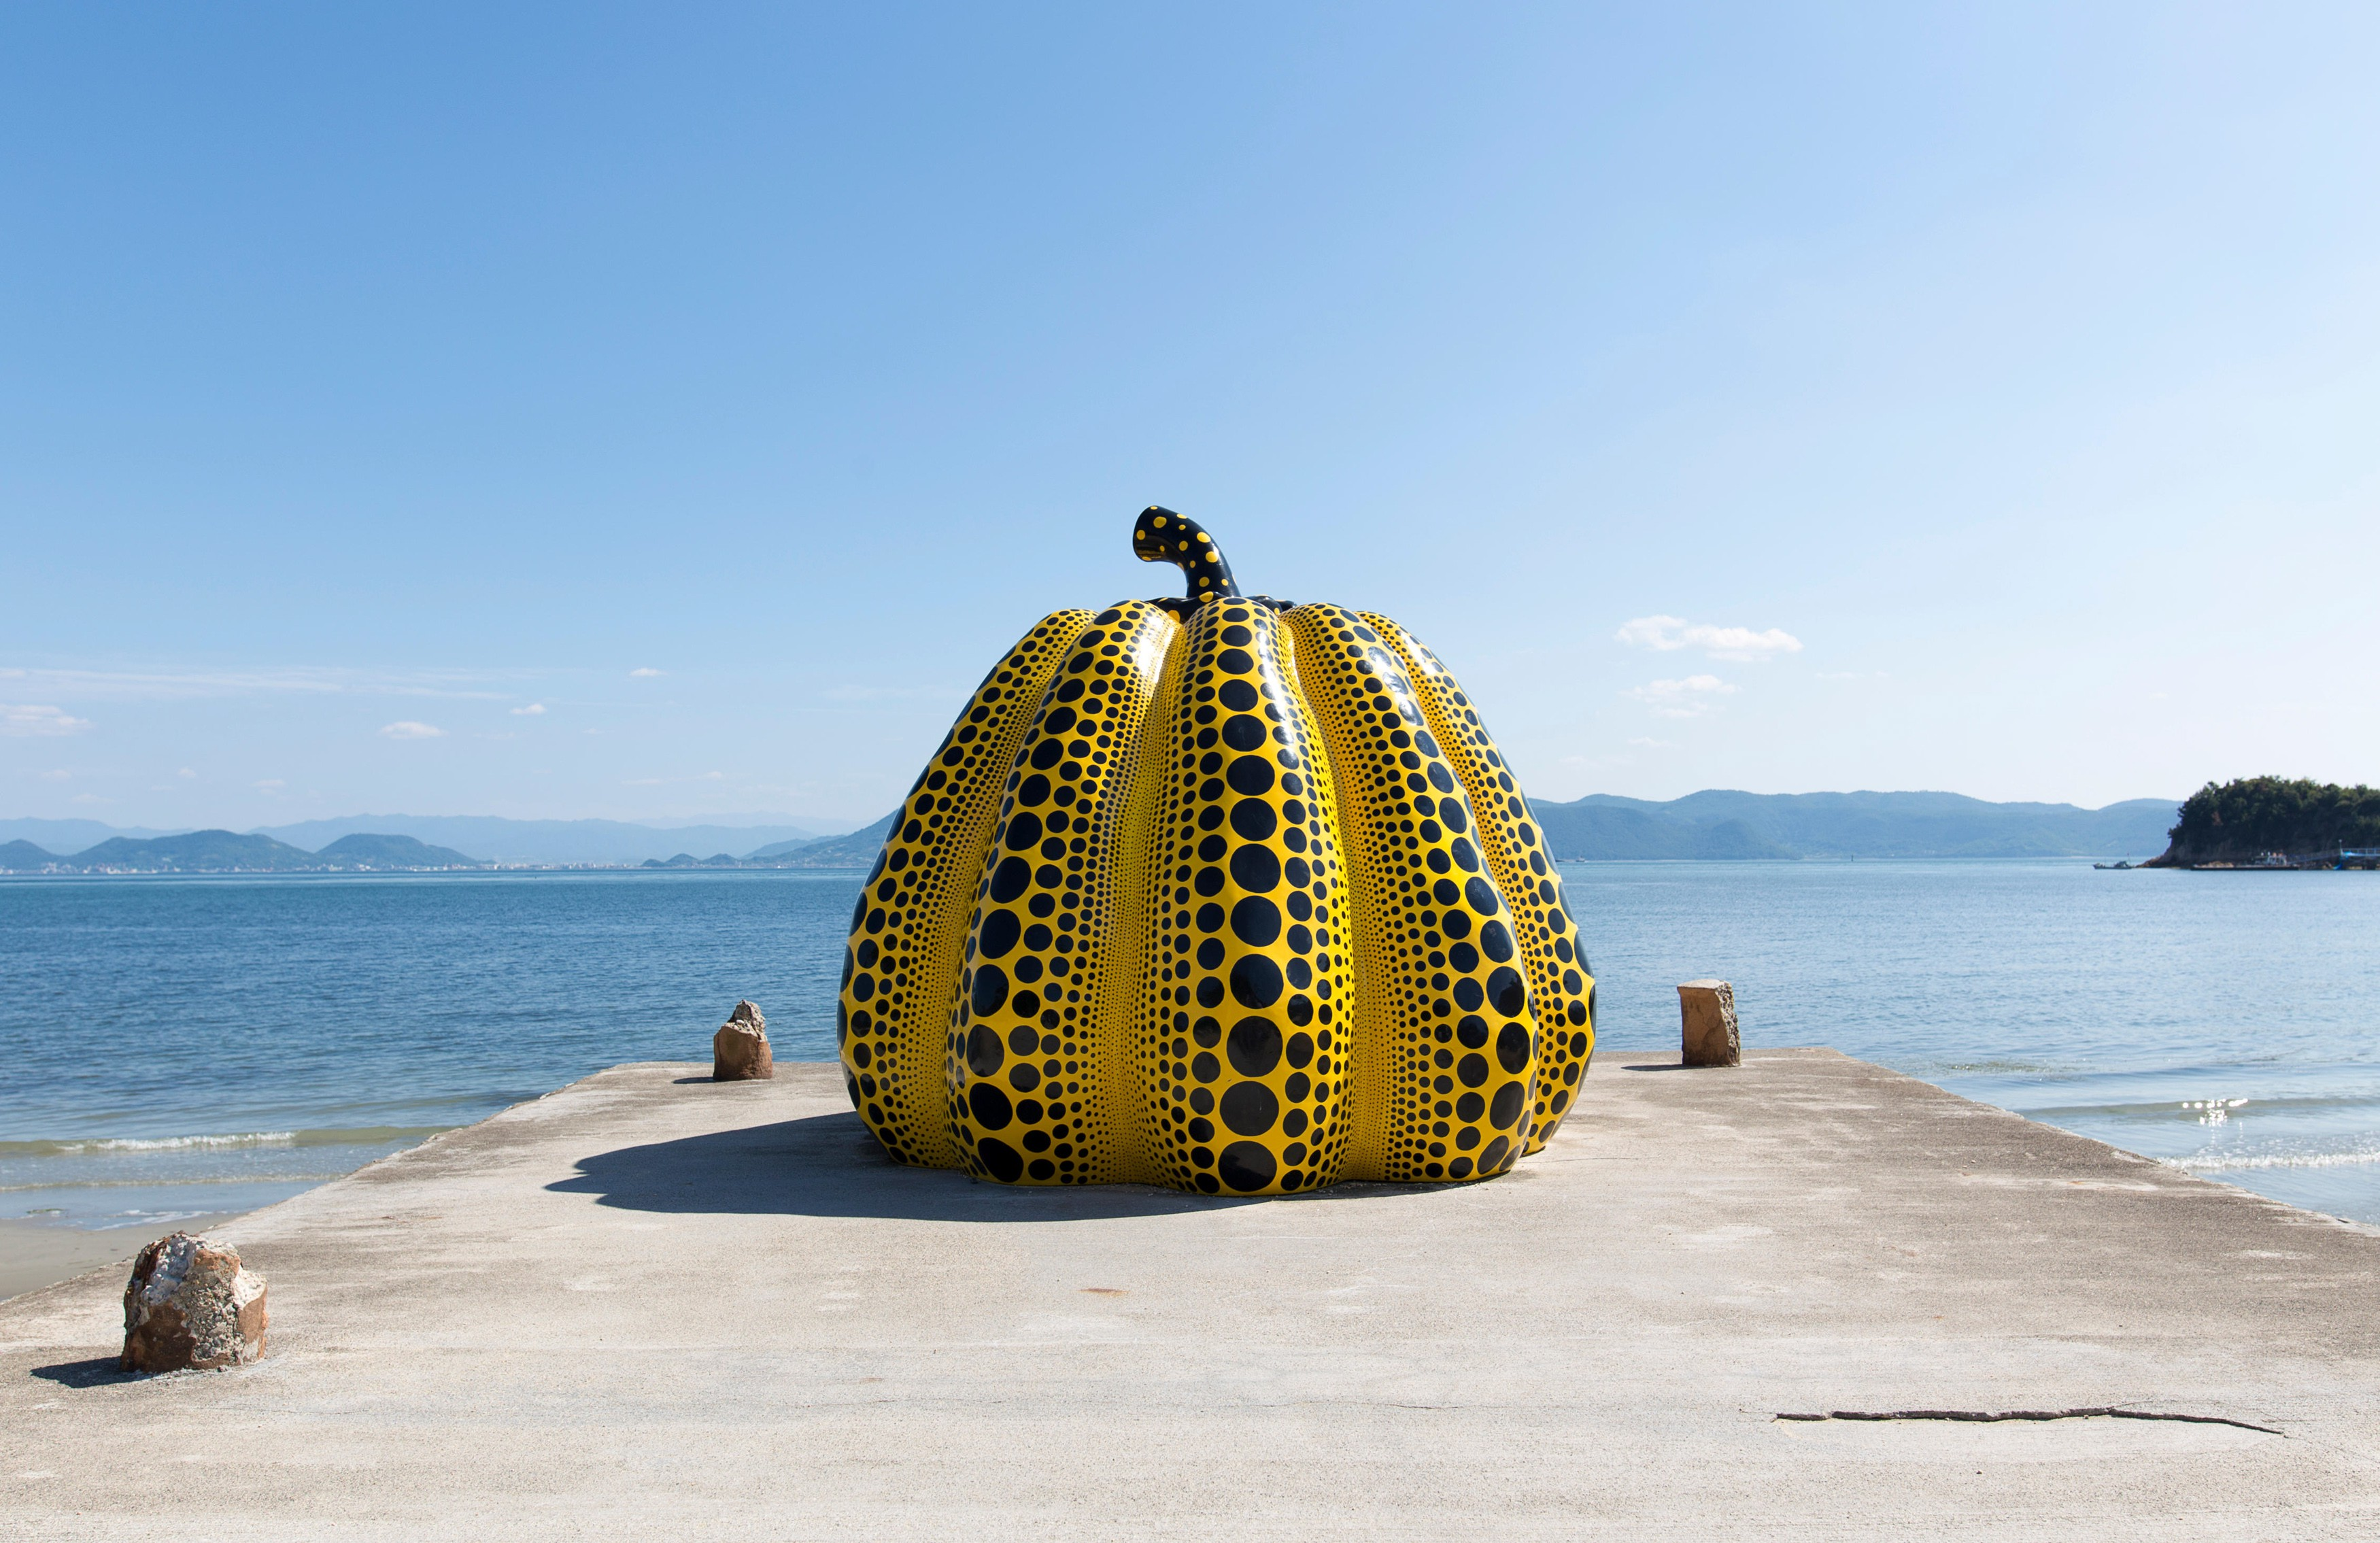 One of Yayoi Kusama's giant 'Pumpkin' sculptures is on display in Naoshima